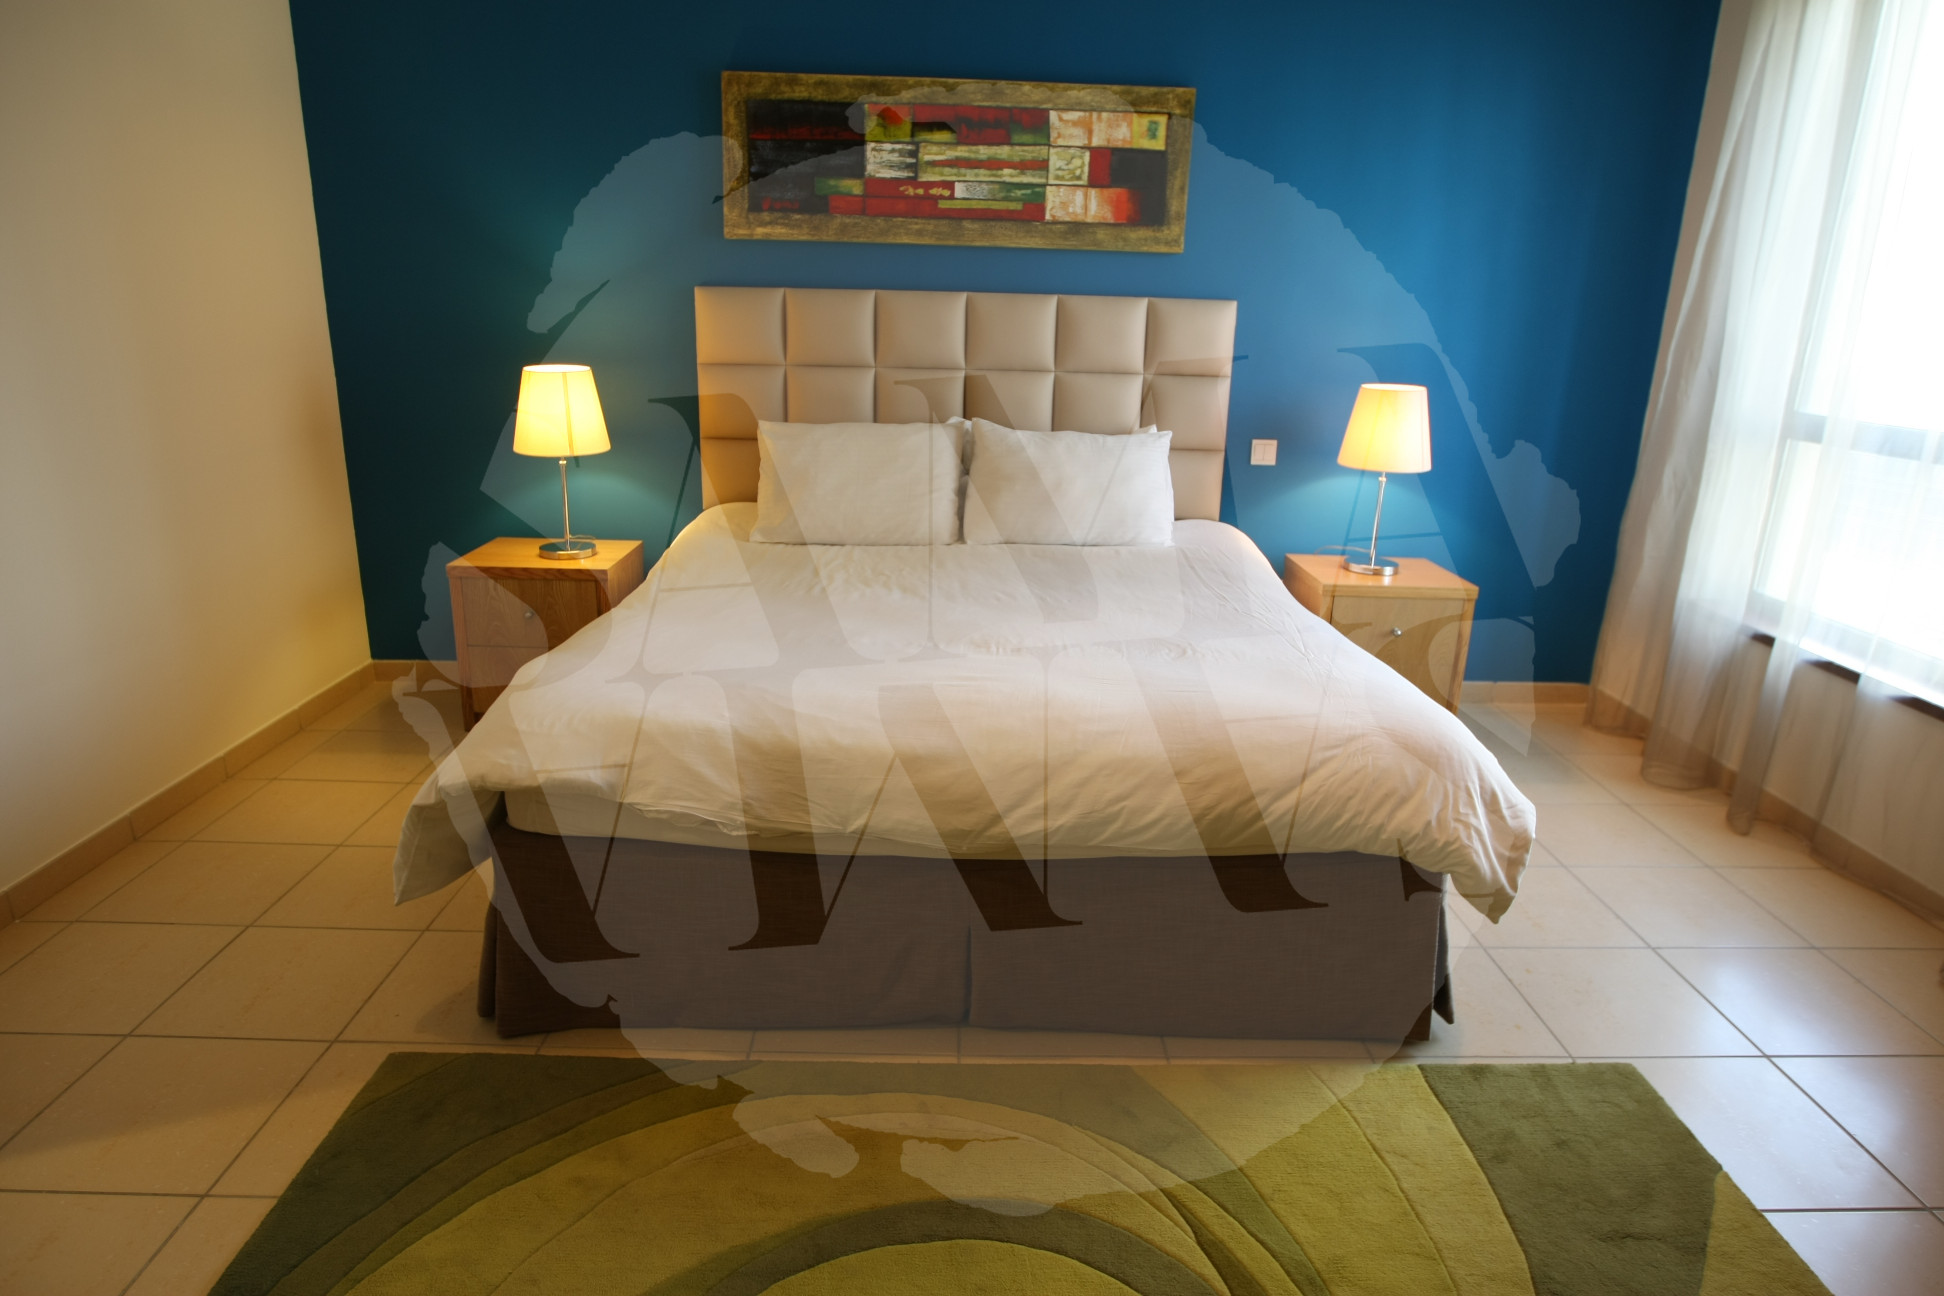 The spacious bedroom is the perfect setting to finish off a long day